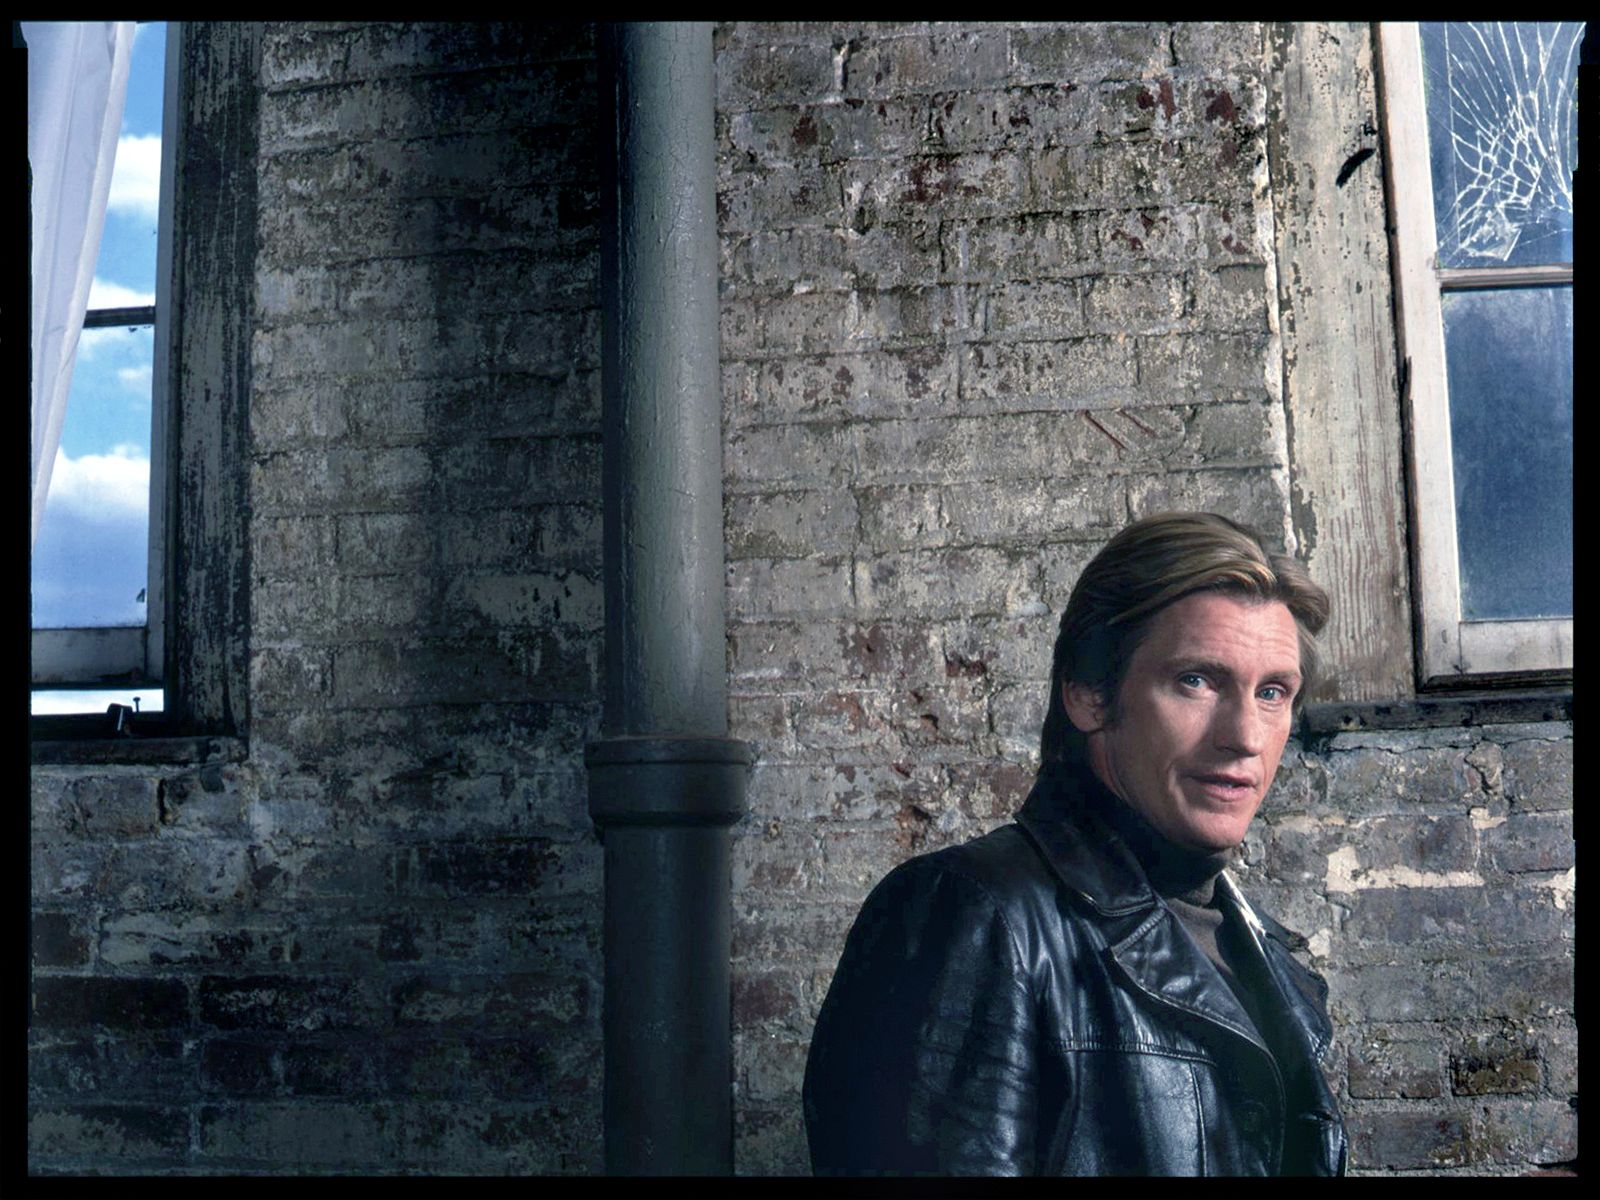 DENIS LEARY, ACTOR AND COMEDIAN